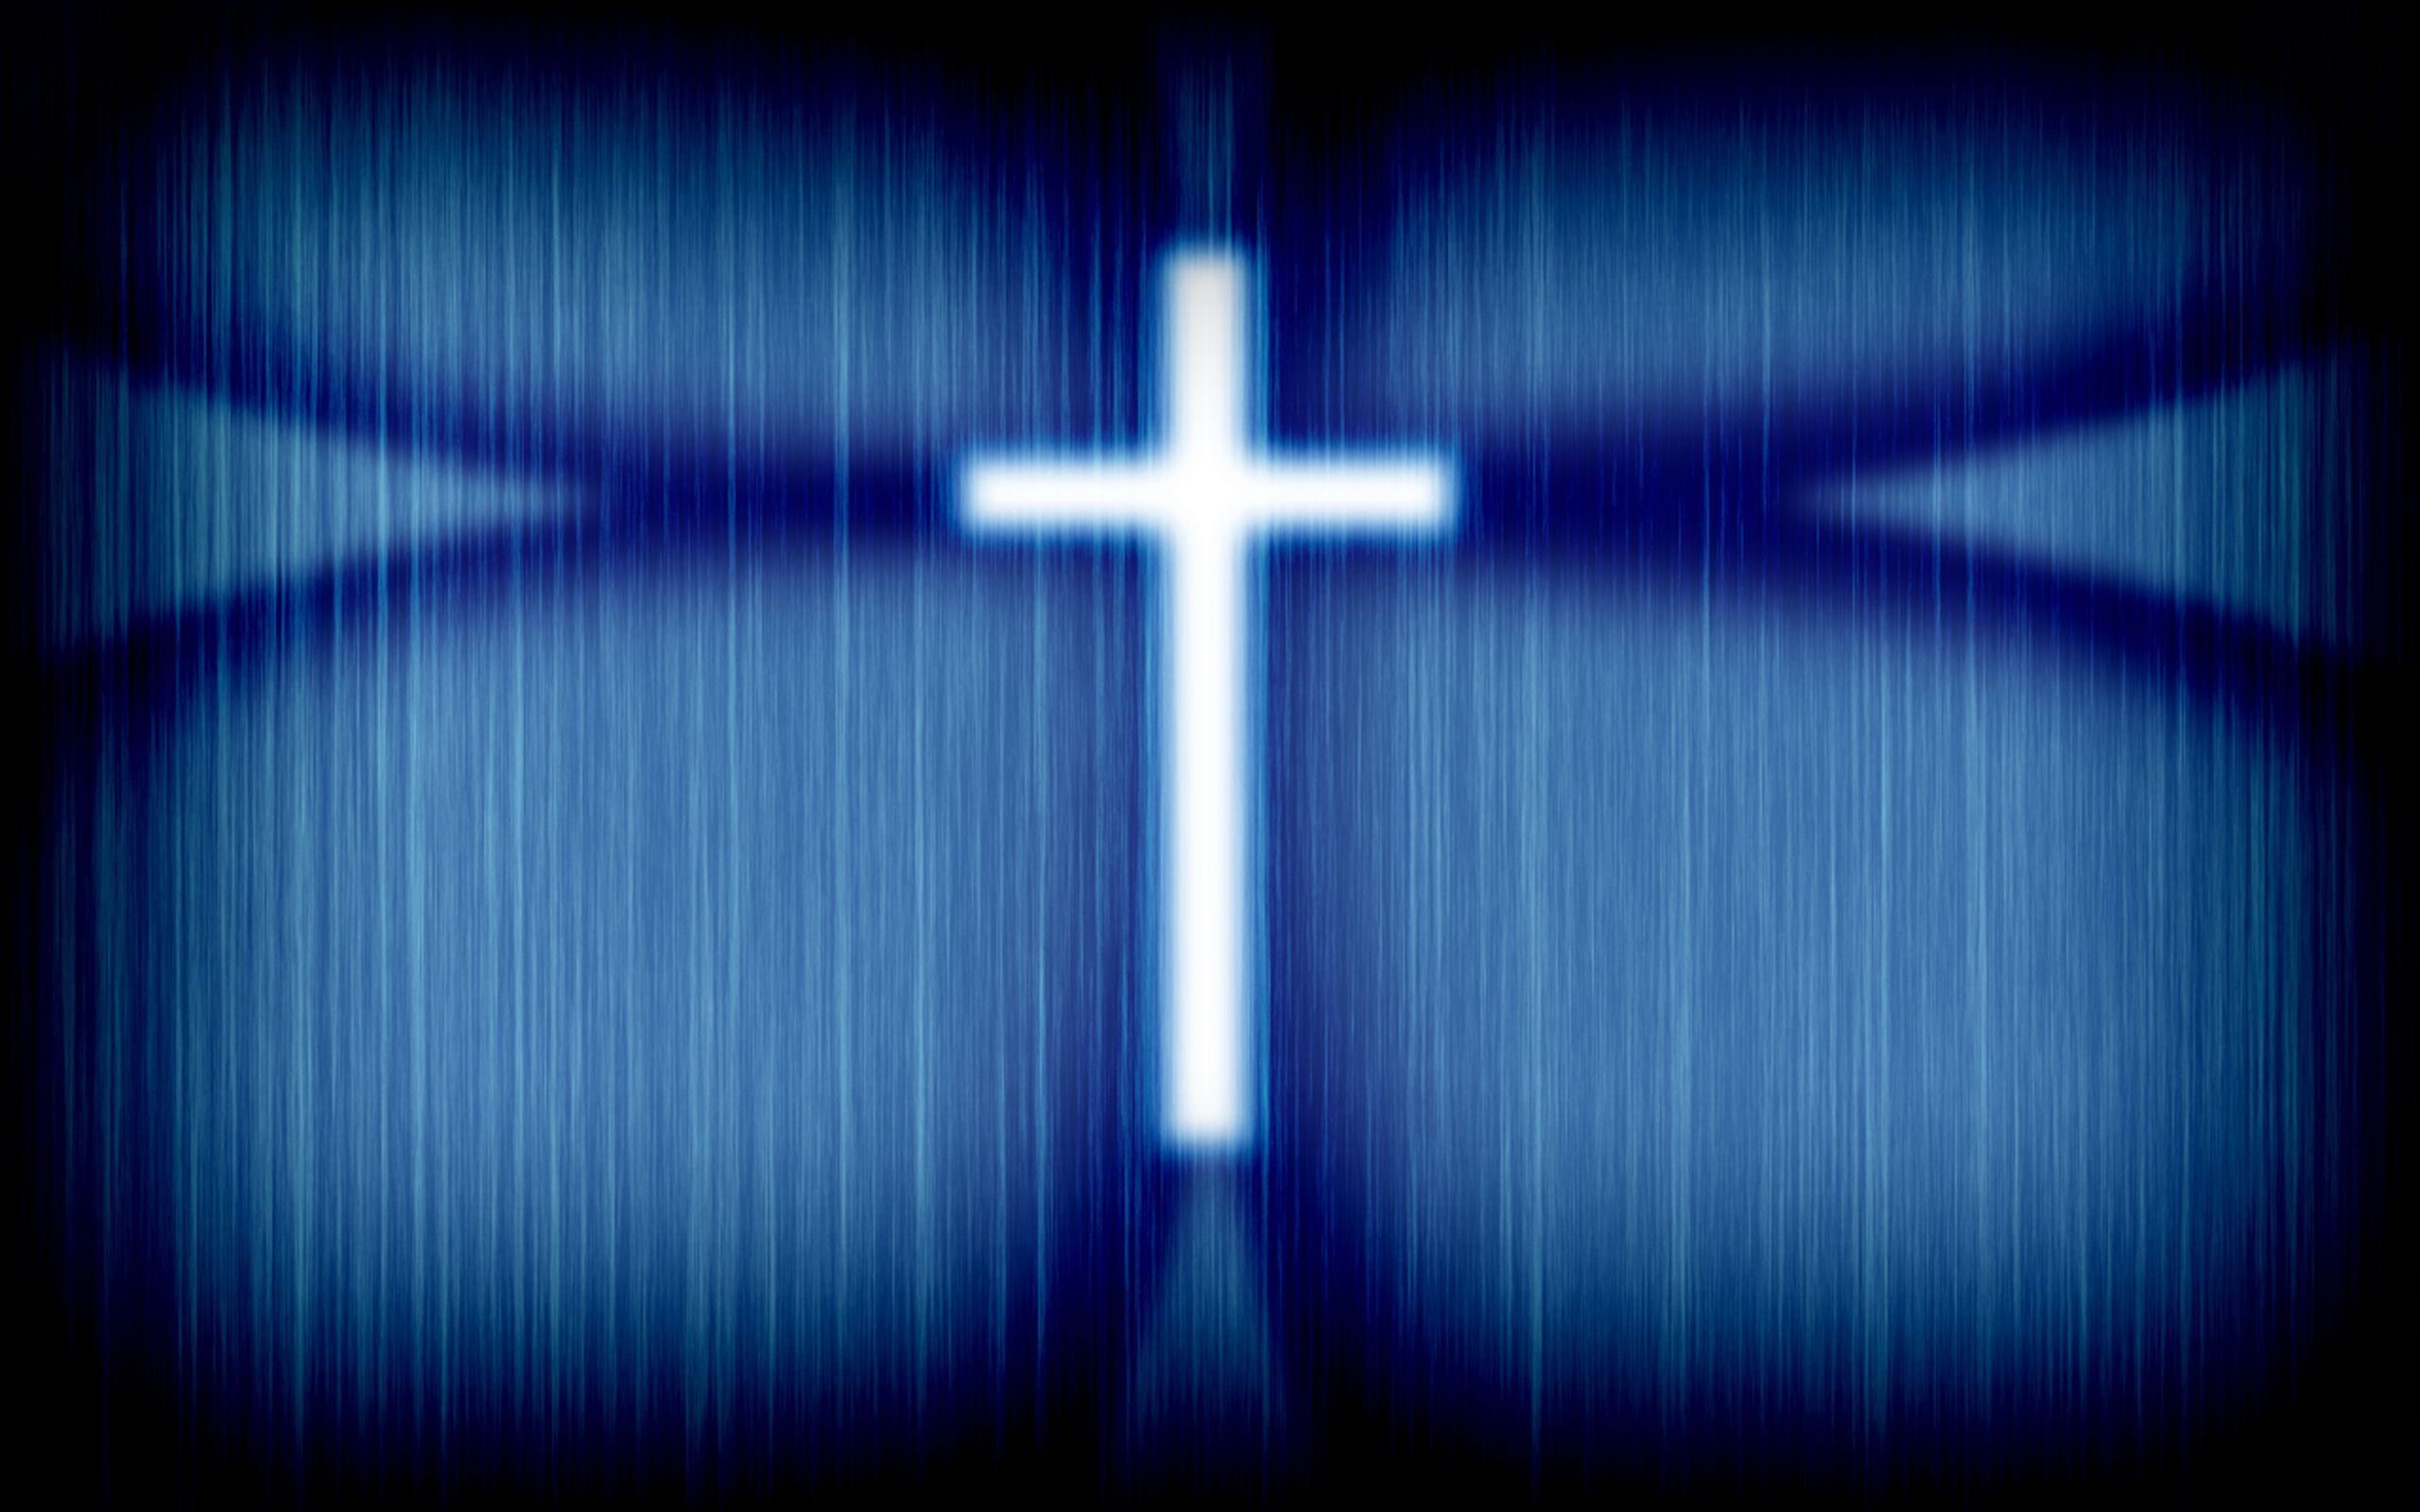 Blue Cross Wallpaper   Christian Wallpapers and Backgrounds 2560x1600